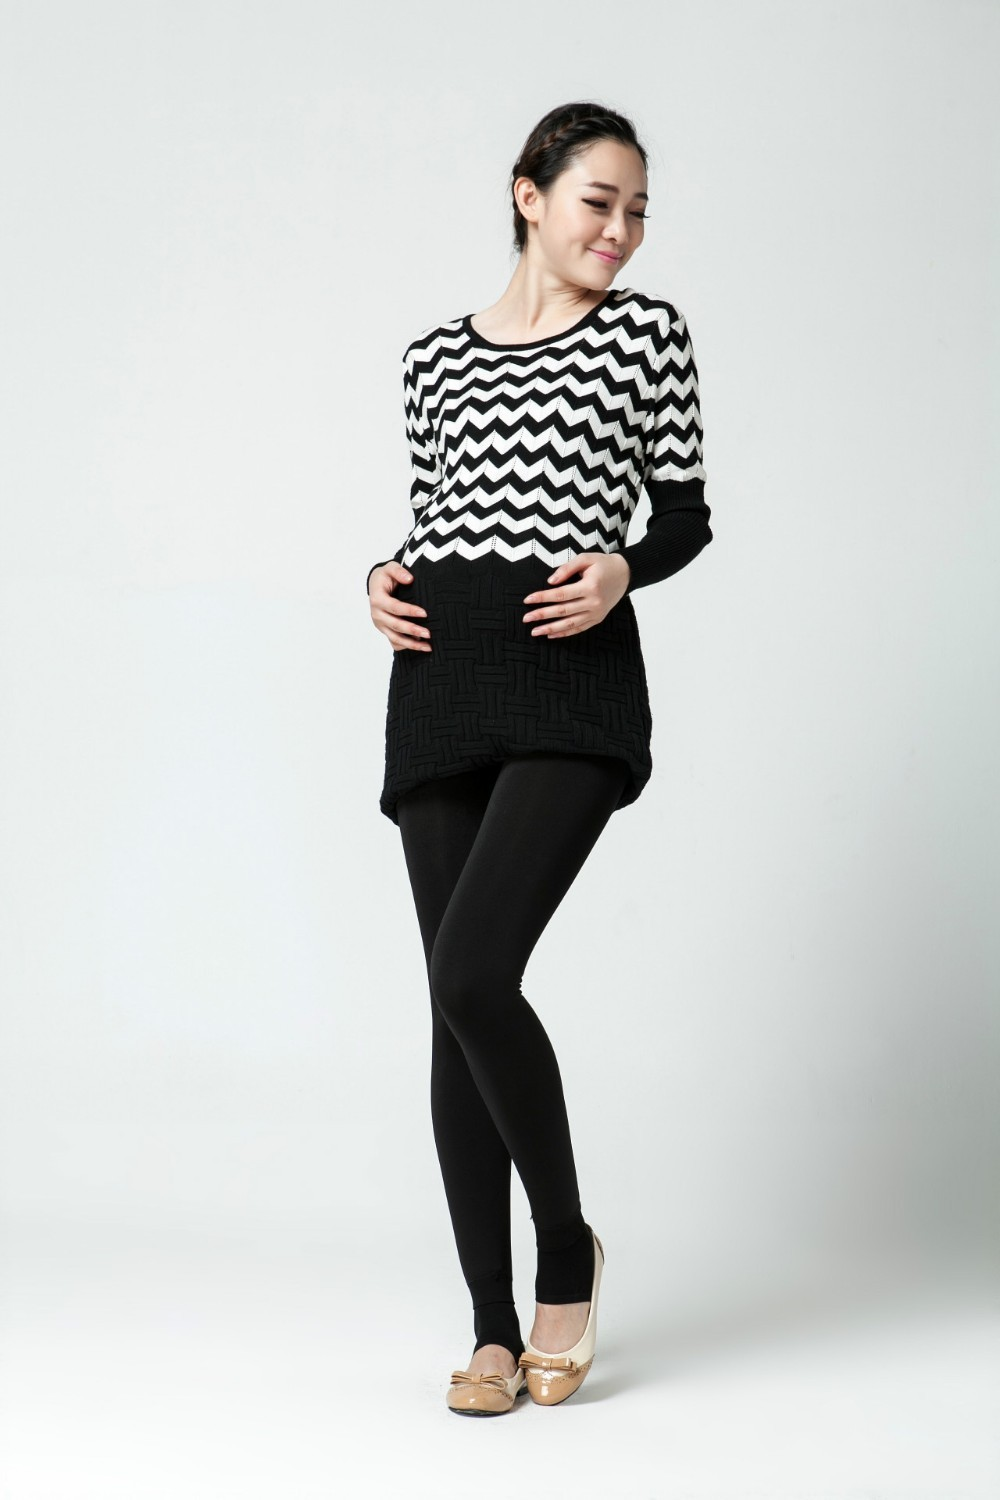 Women clothing maternity clothes winter Leggings thickened with velvet pregnant women trousers warm pants 5